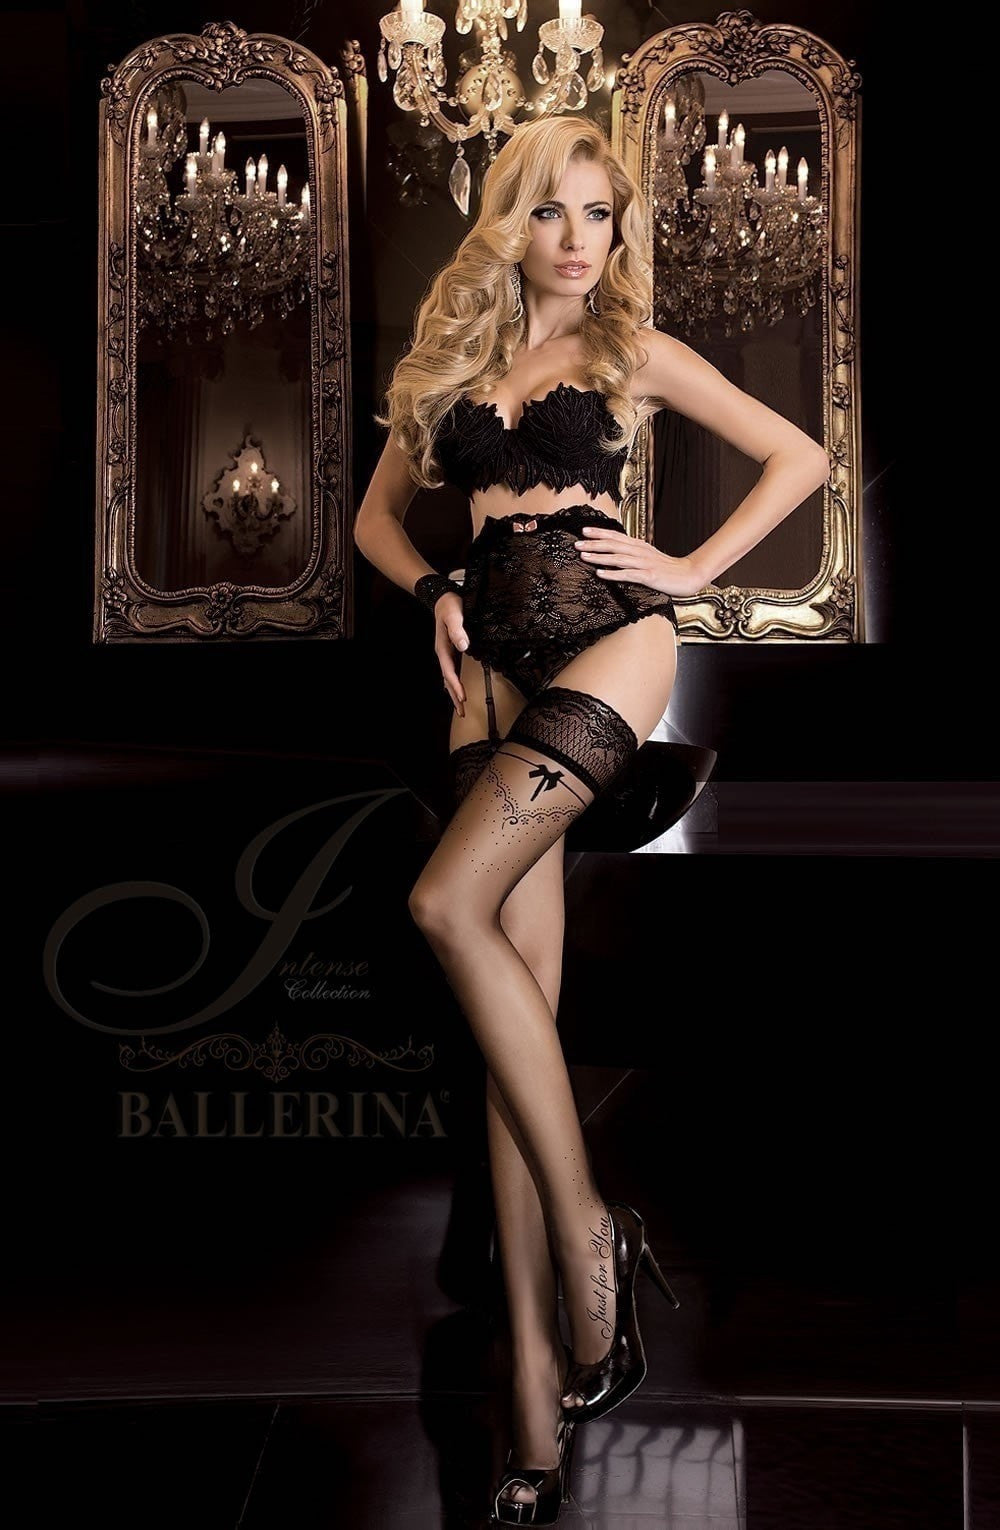 Ballerina 'Just For You' Hold Ups 261 (Black) - Hold Up Stockings - Ballerina - Charm and Lace Boutique